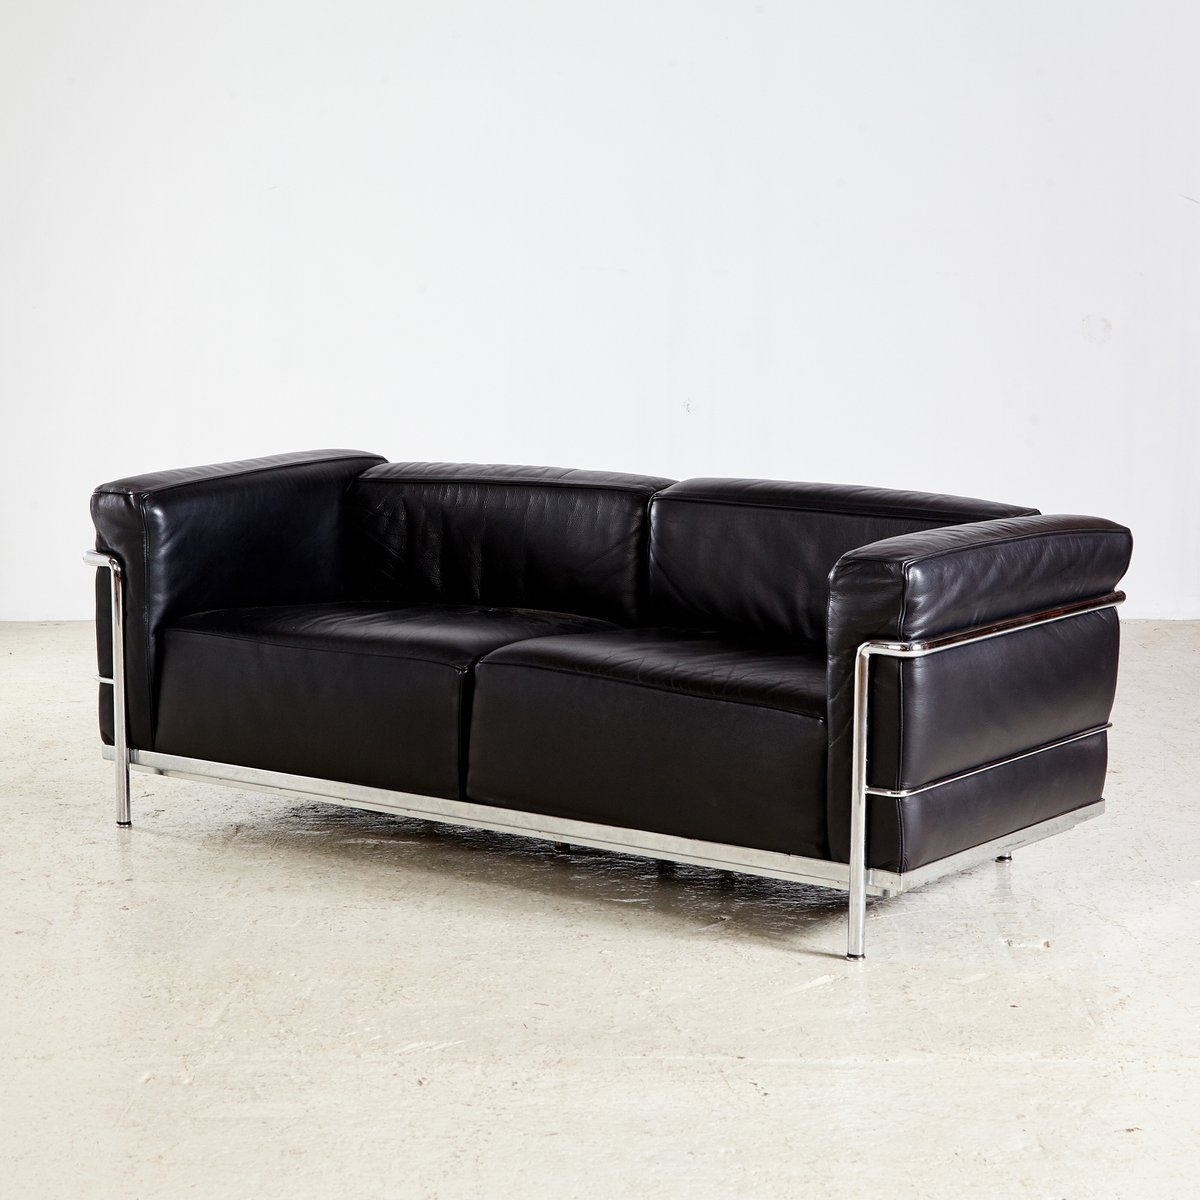 lc3 sofa air bed lowest price by le corbusier pierre jeanneret and charlotte